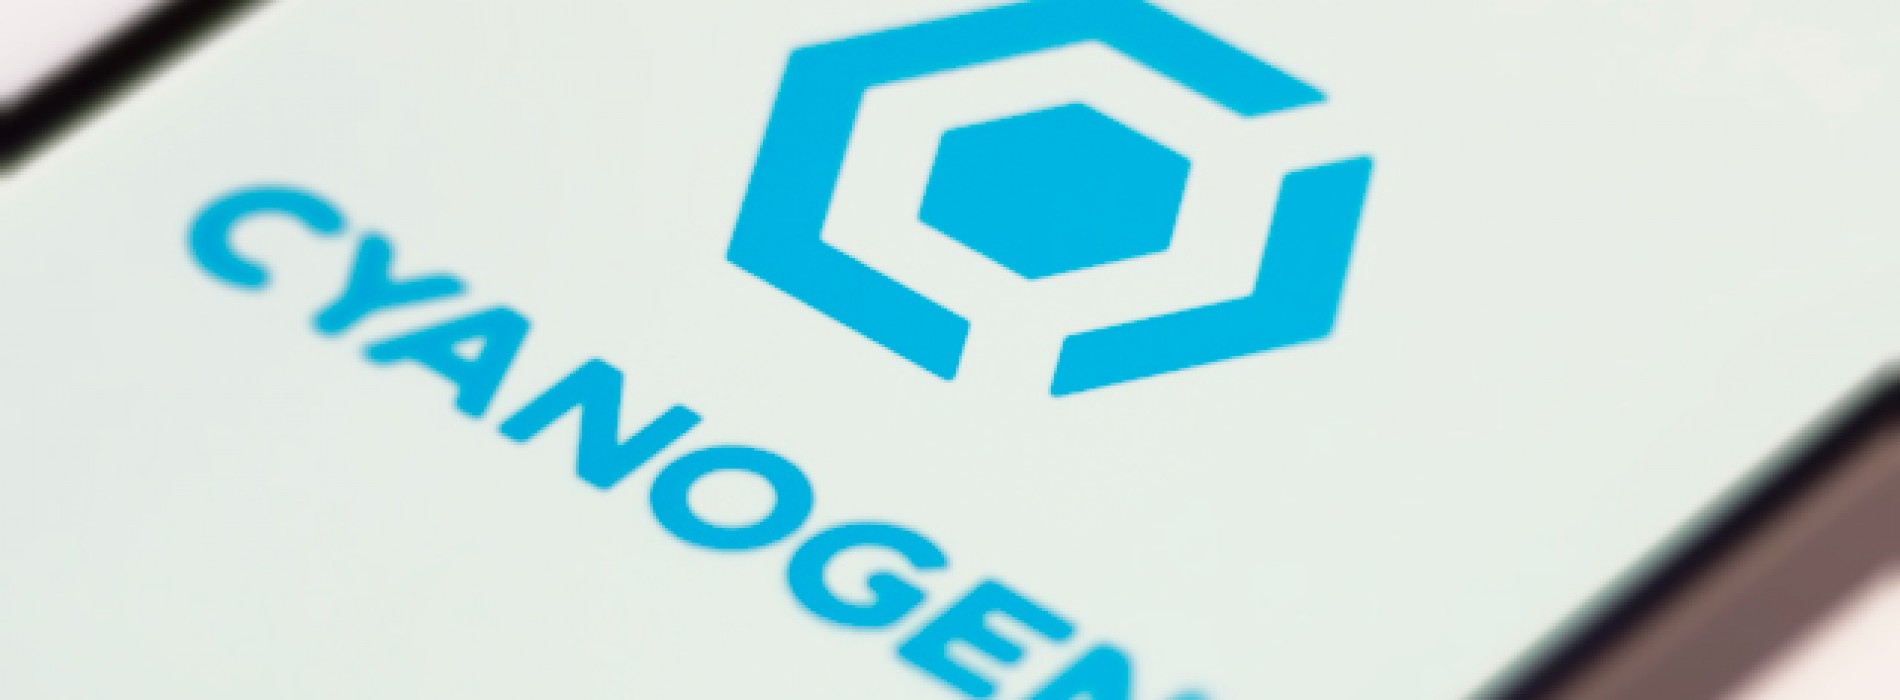 CyanogenMod 11.0 M8 begins rolling out to select devices